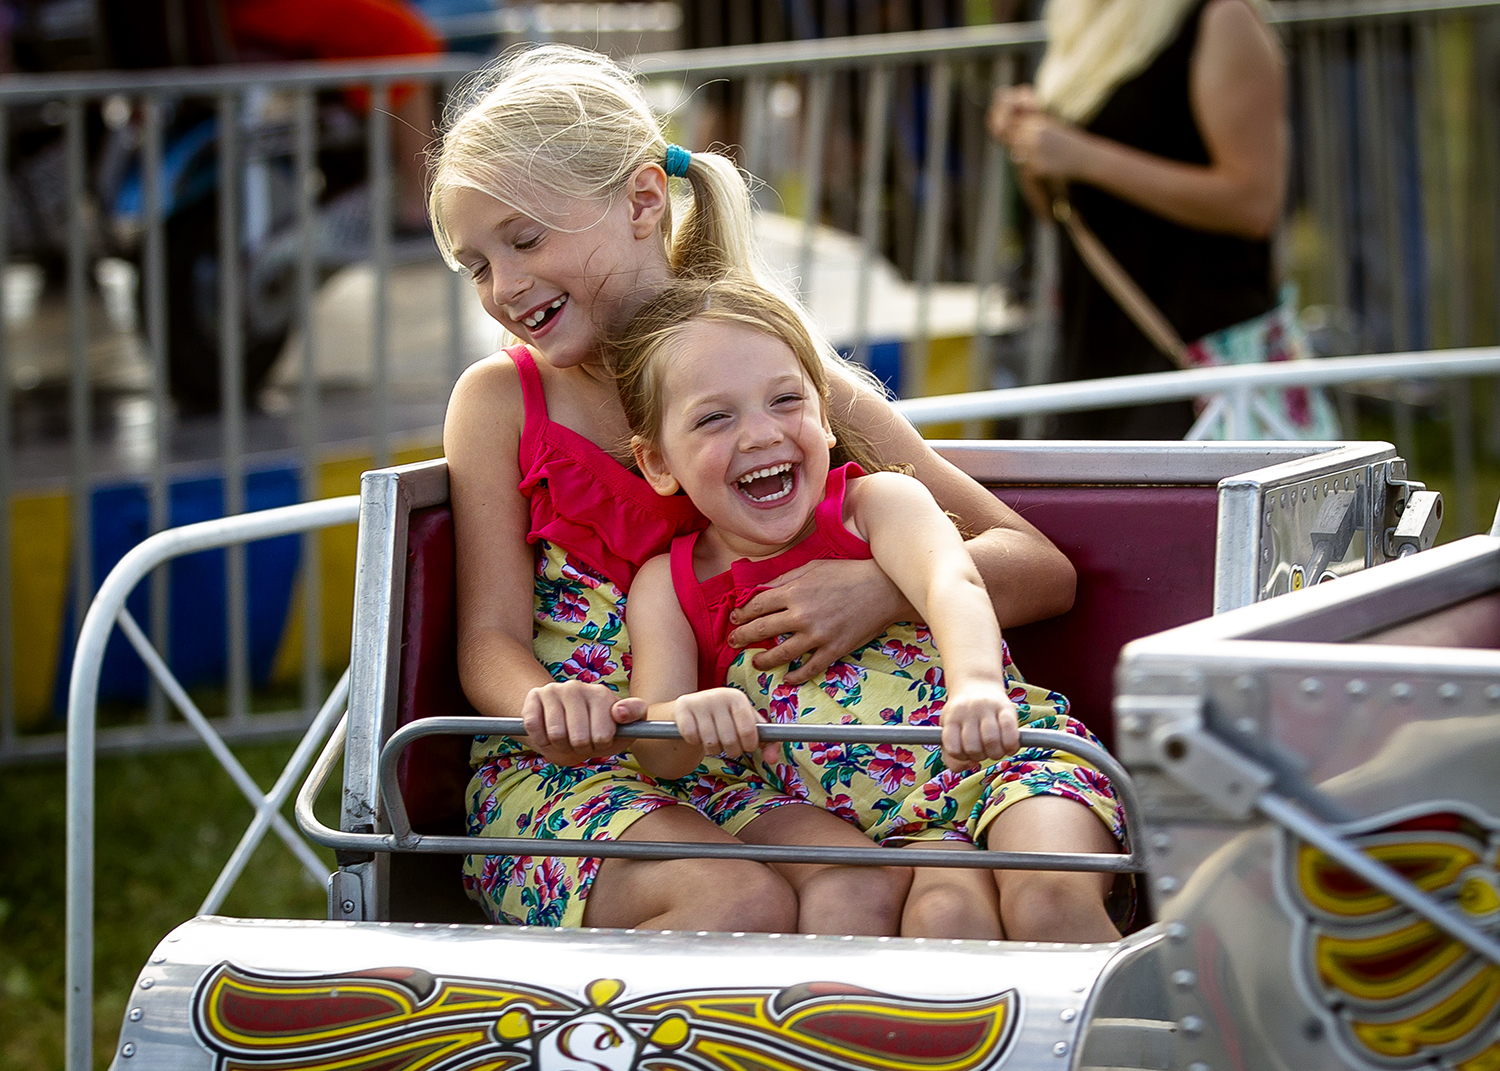 Hazle Smith, 8, holds on tight to her sister, Eve Haggard, 3, as they are spun around in an amusement ride in the carnival during Menard County Fair, Wednesday, July 18, 2018, in Petersburg, Ill. The fair continues on Thursday with the Barnyard Olympics and Animal Scrambles and goes through Sunday, July 22nd. [Justin L. Fowler/The State Journal-Register]